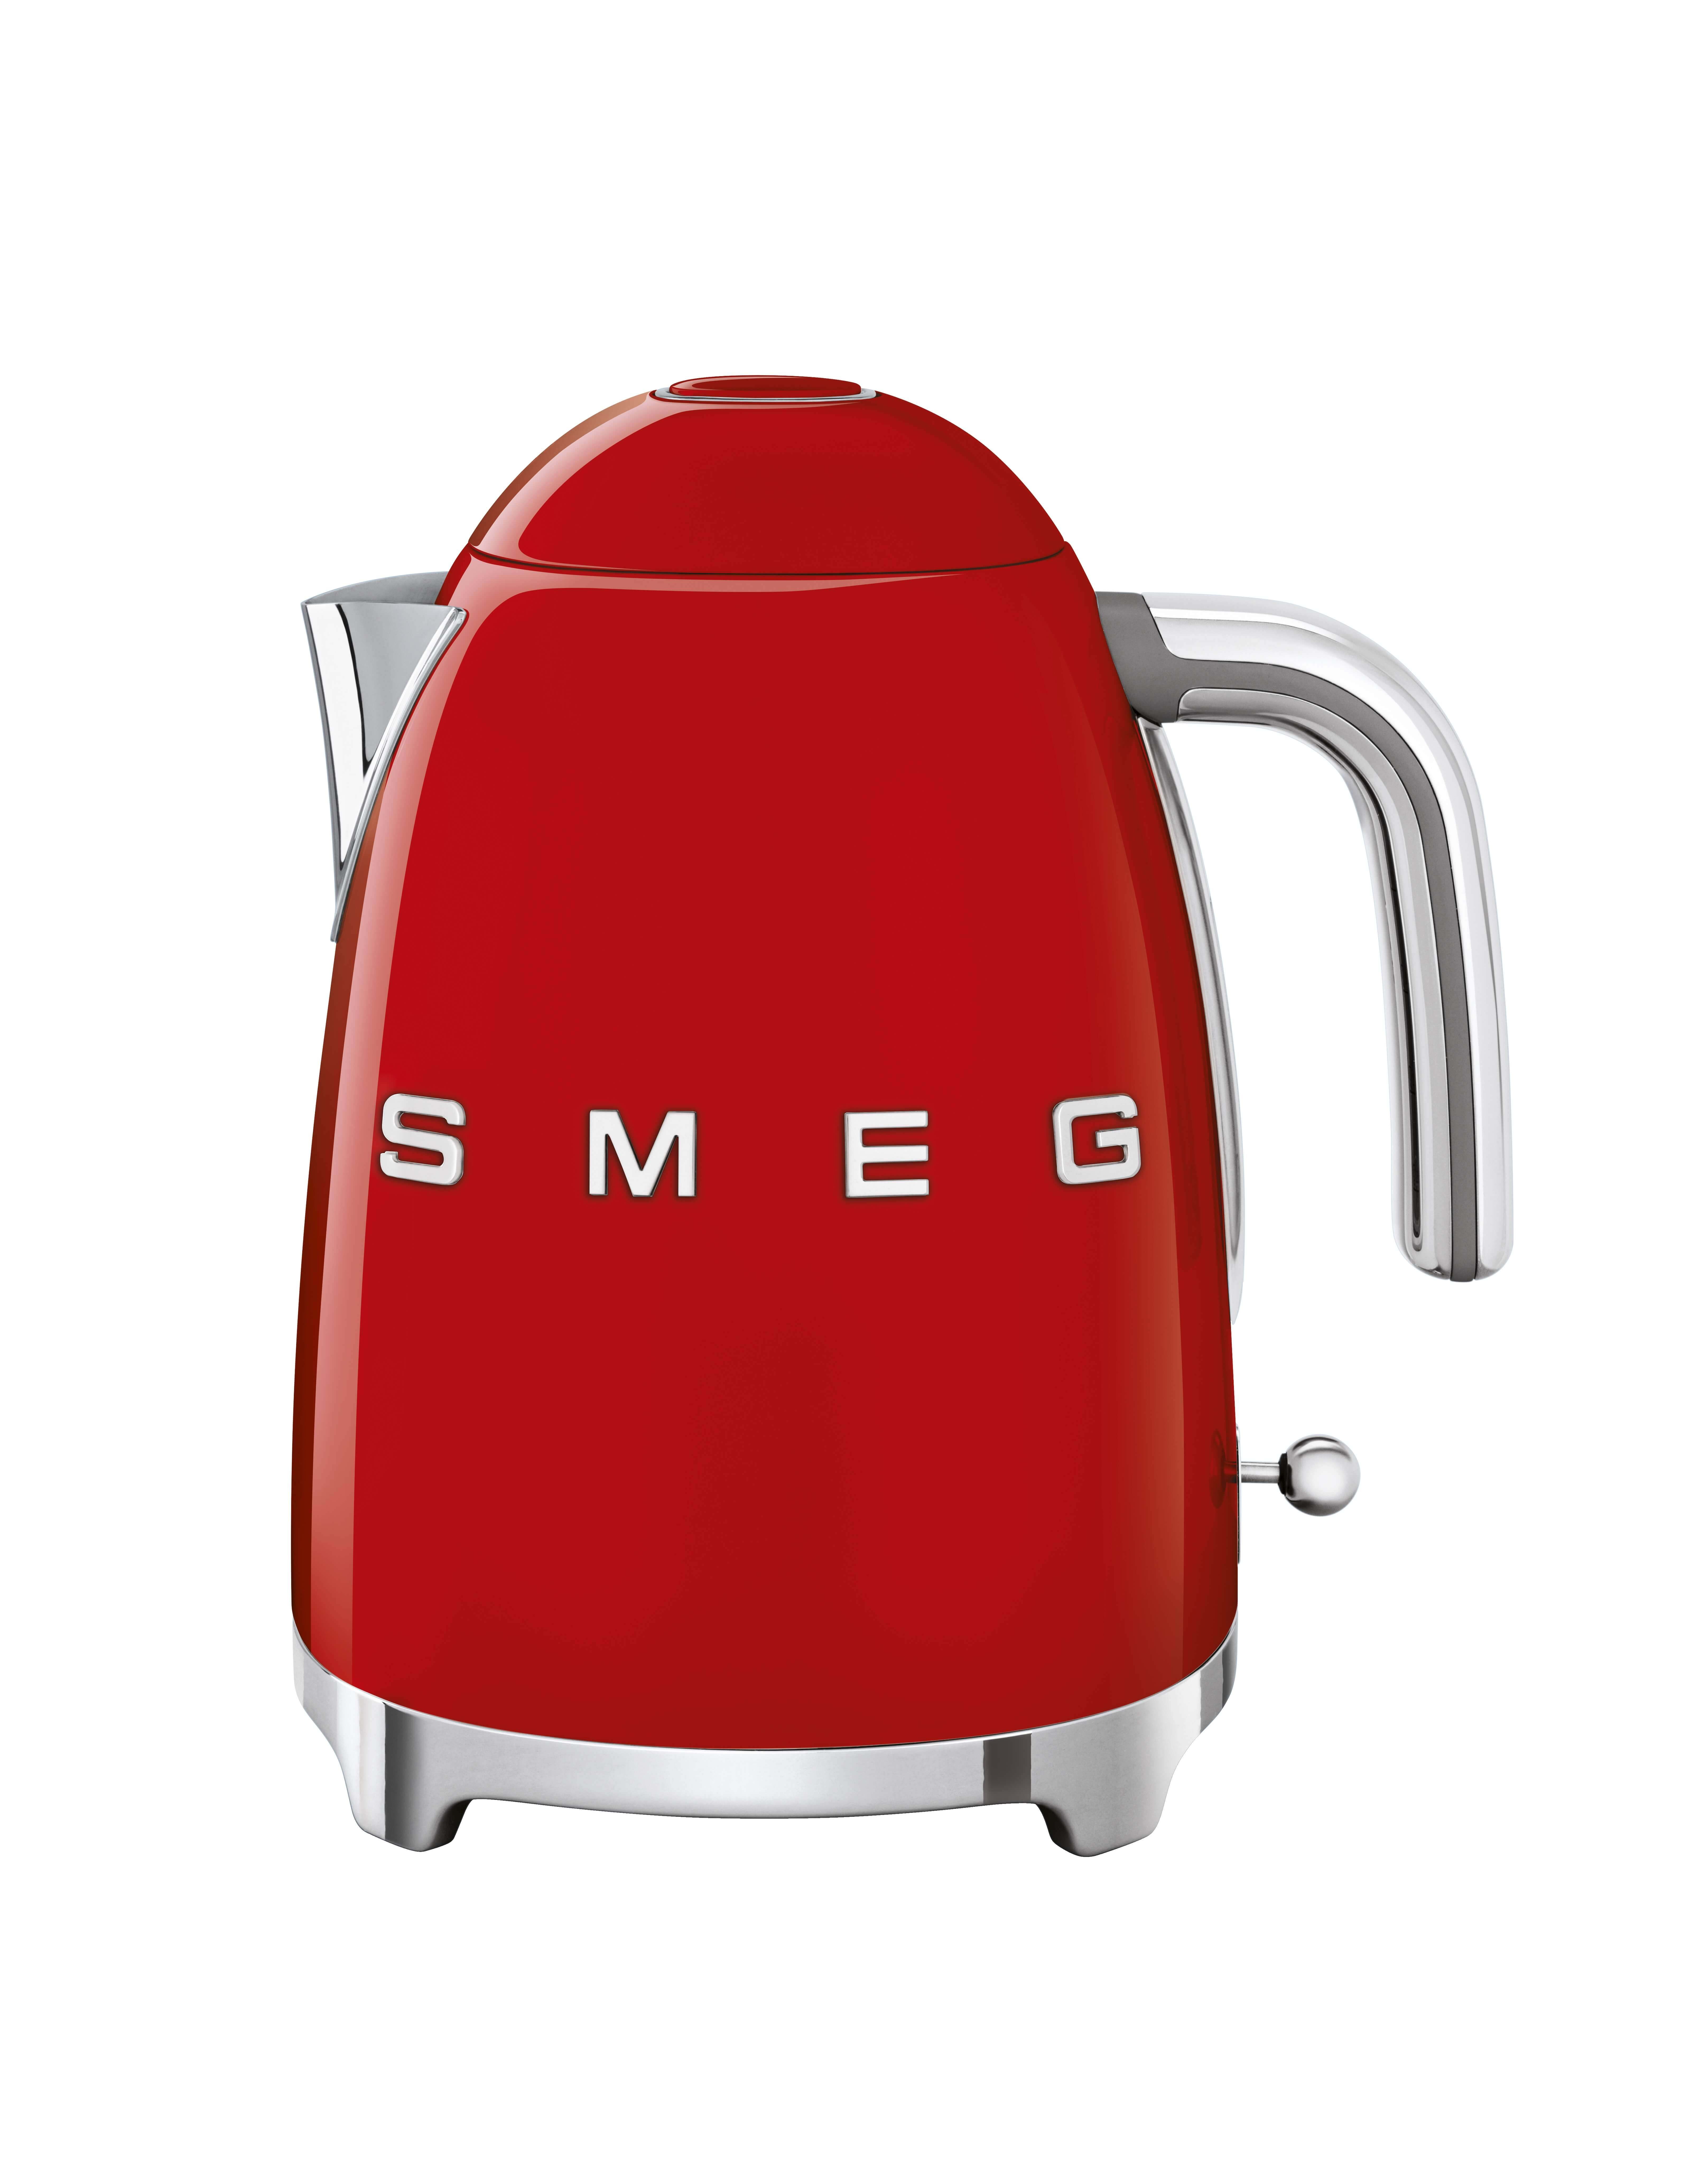 SMEG Kettle 1.7L Red - KLF03RDUK